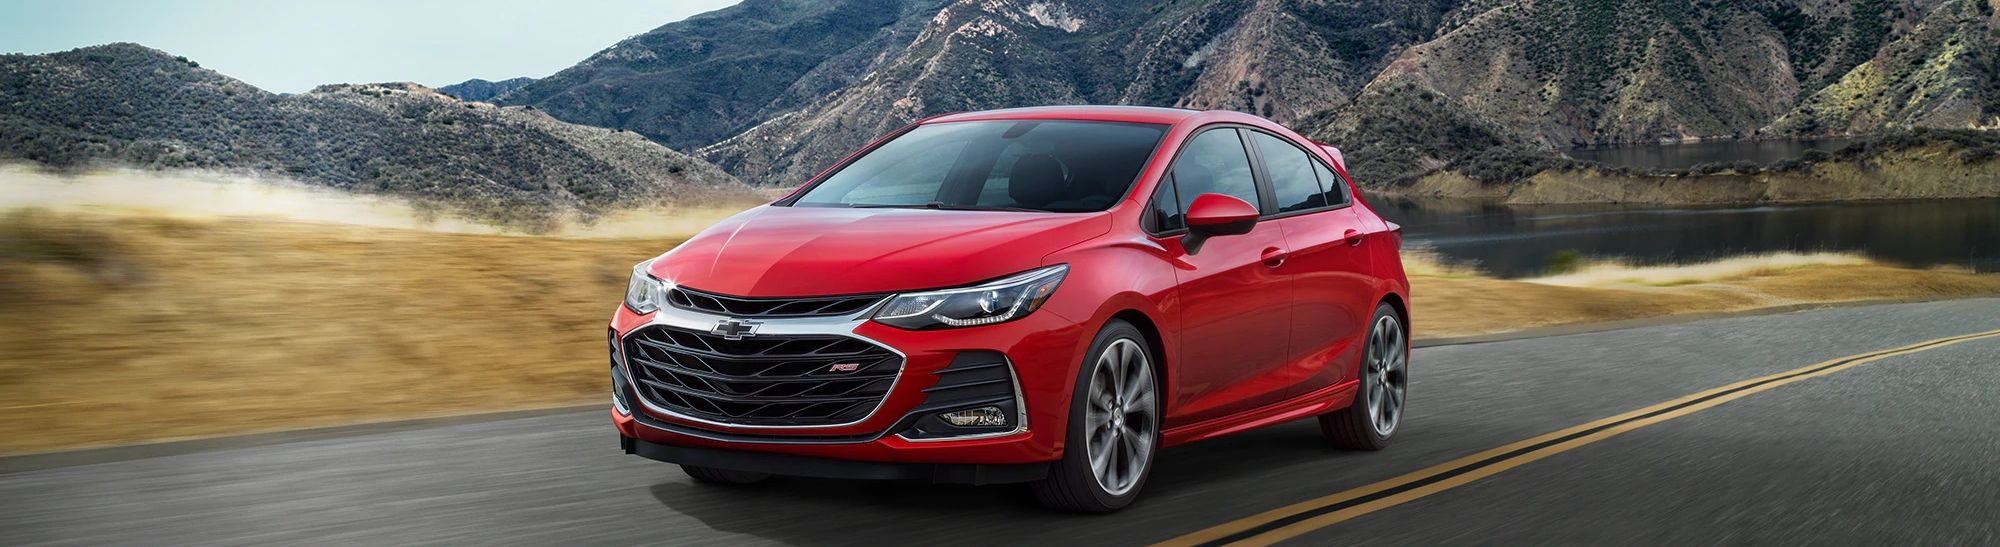 2019 Chevrolet Cruze for Sale near Schererville, IN